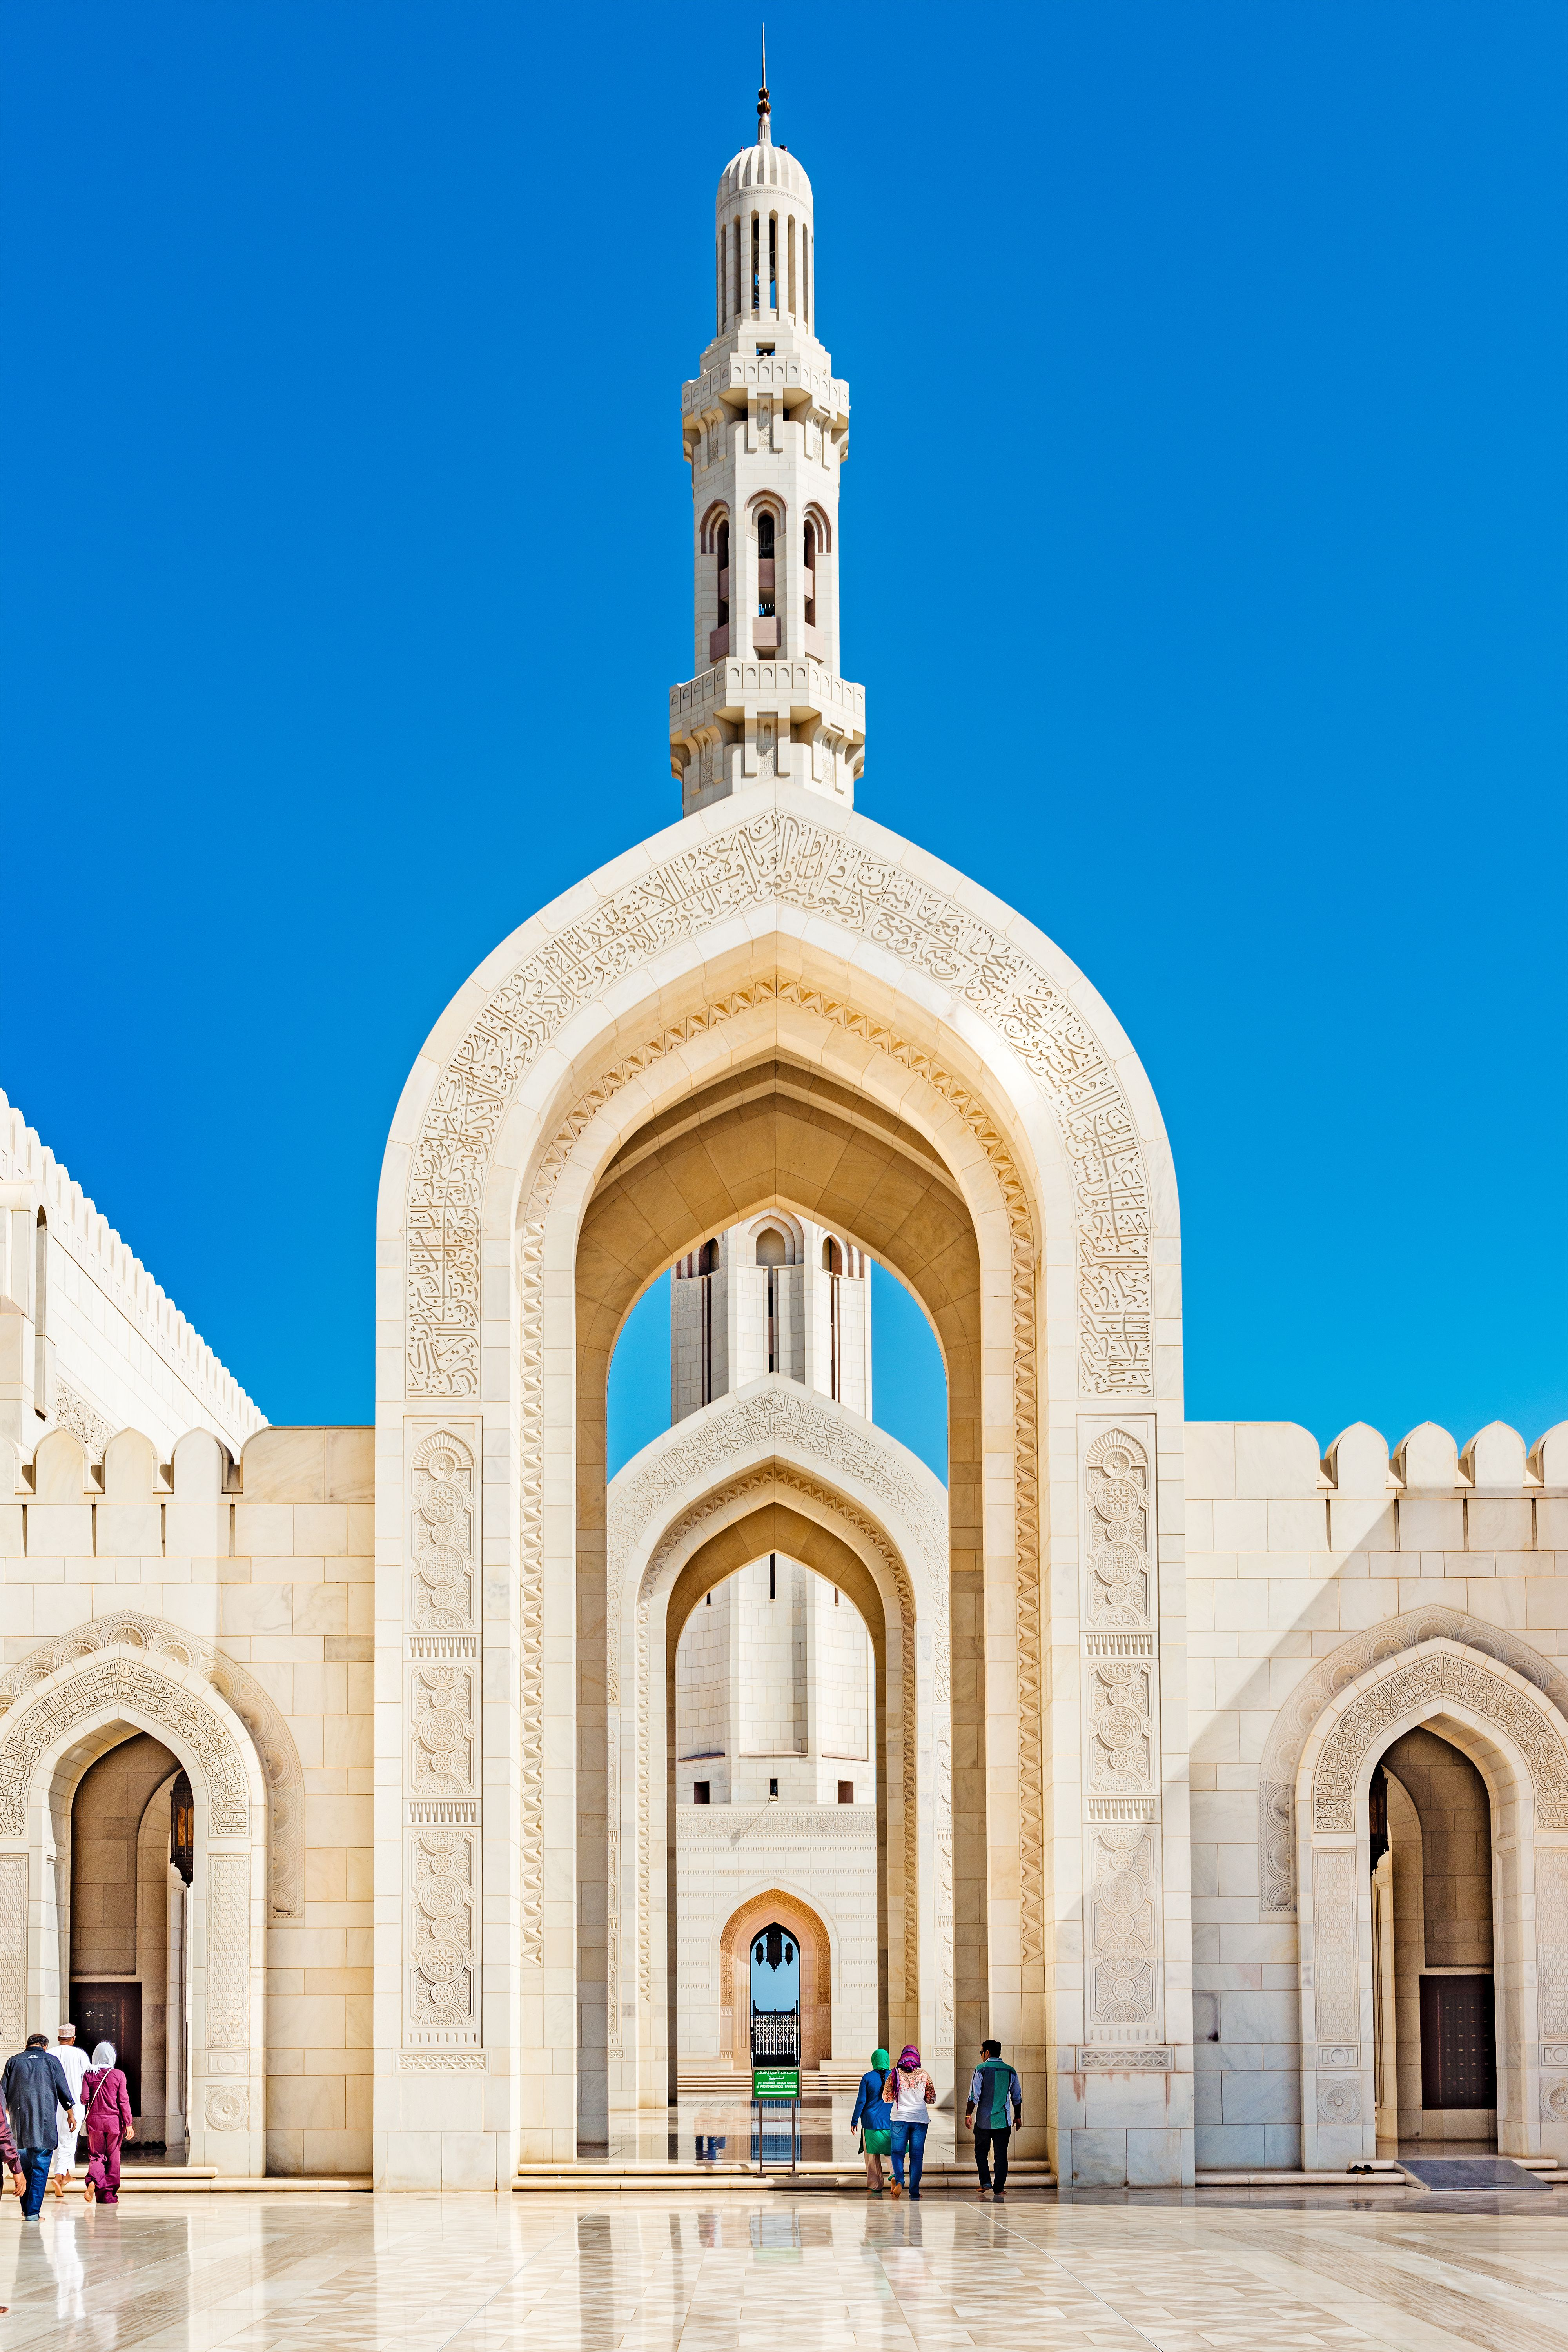 The Sultan Qaboos Grand Mosque In Muscat, Oman.